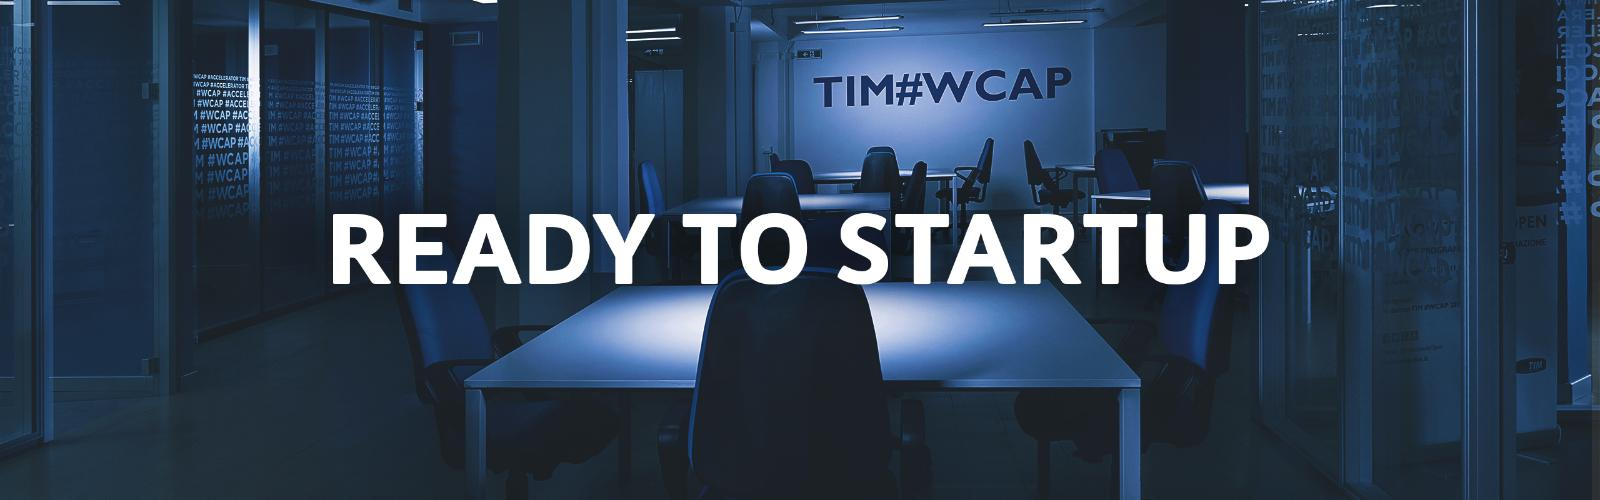 ready ti start up TIMWCAP2016